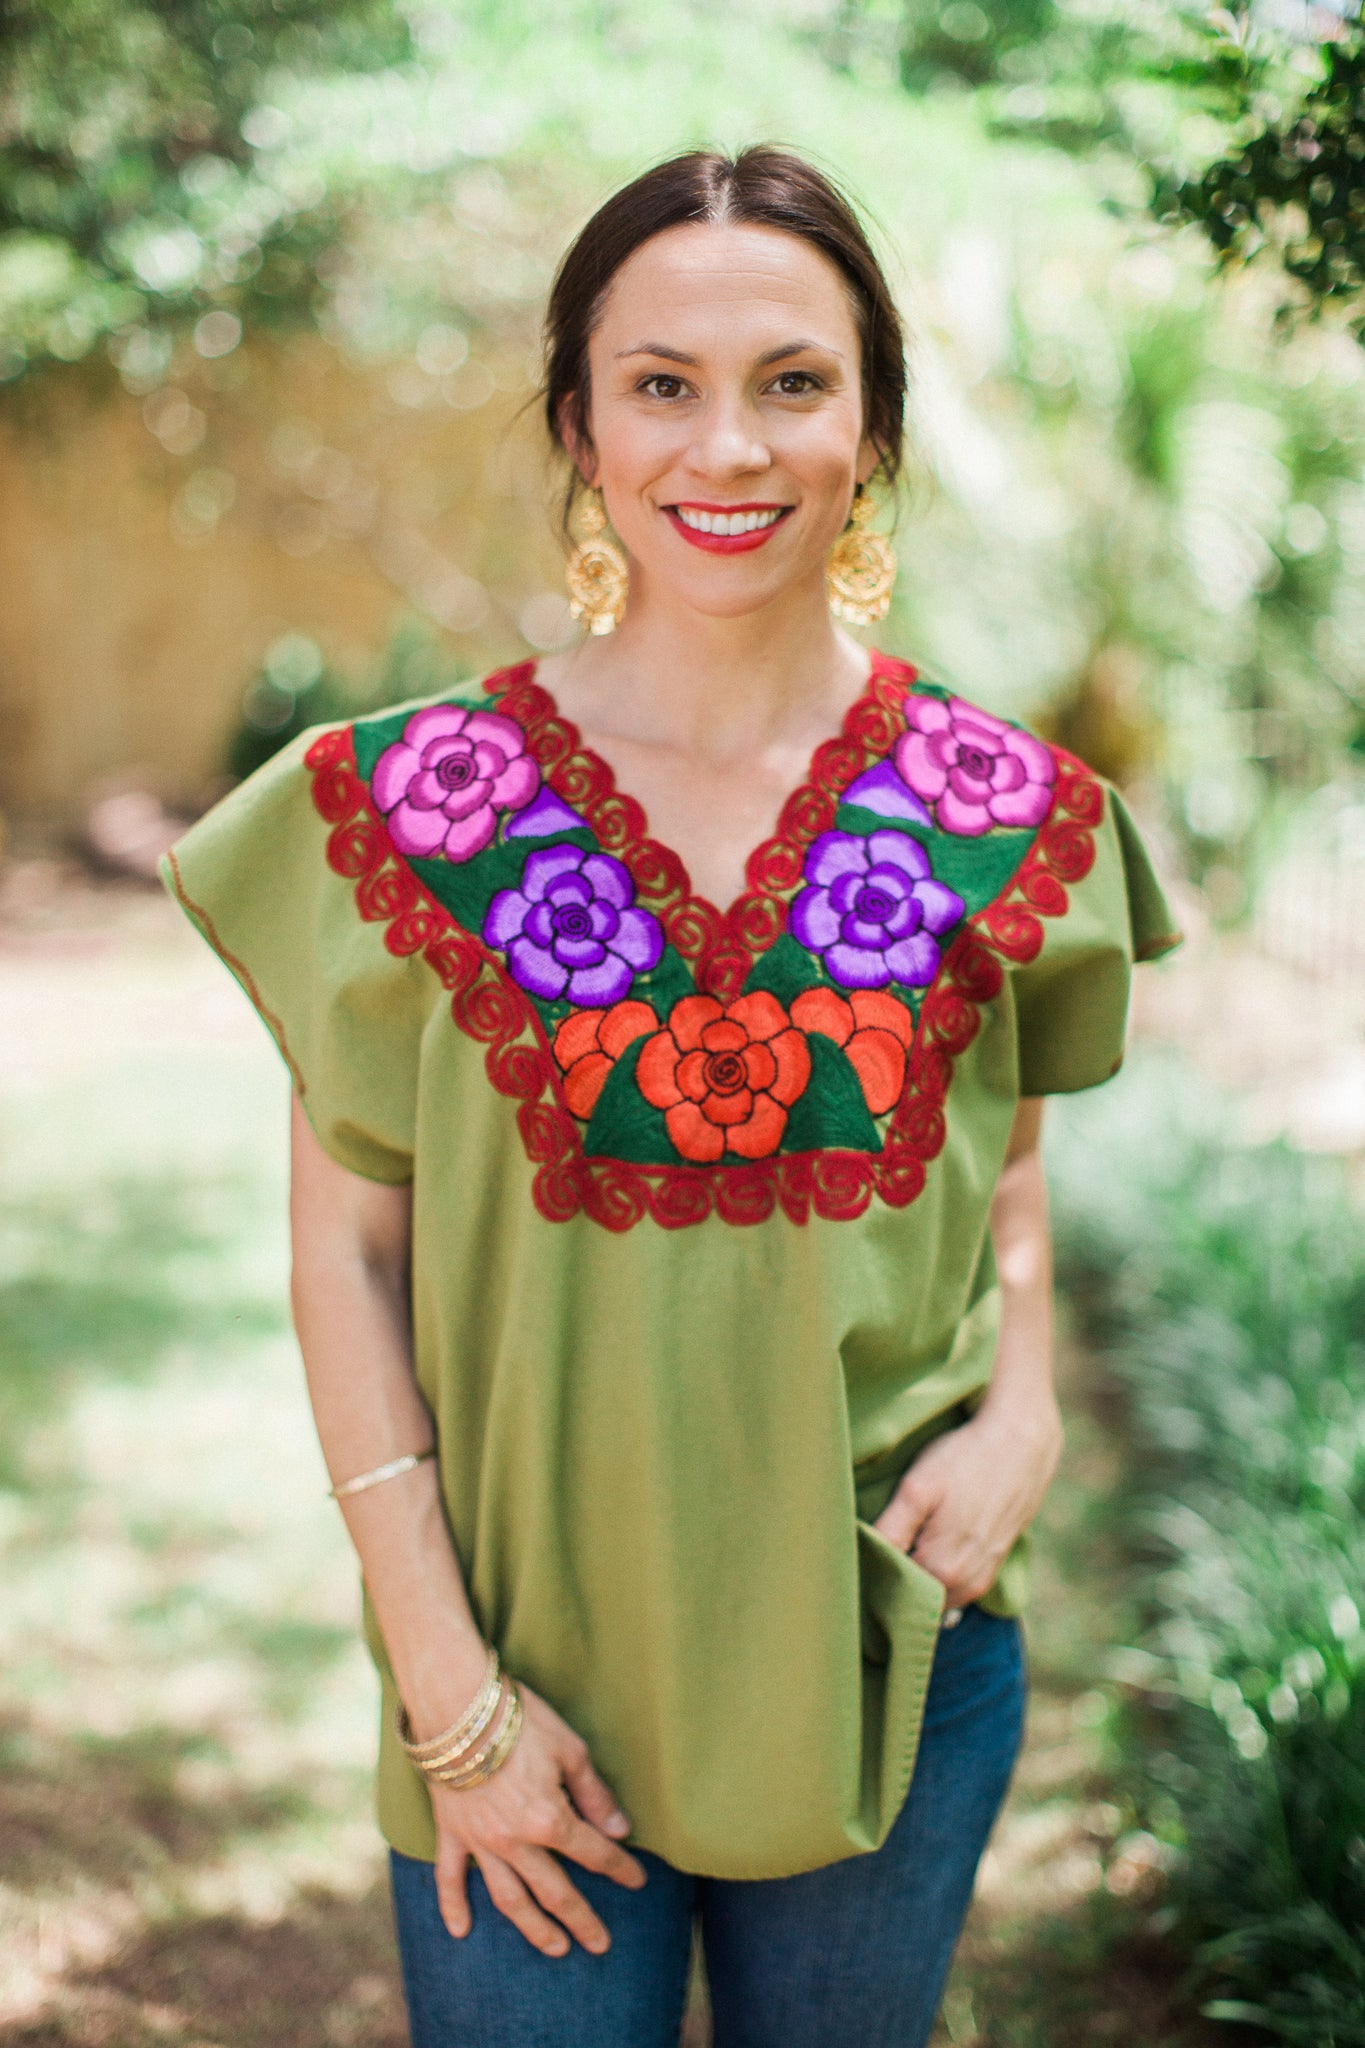 Green La bohemia Blouse